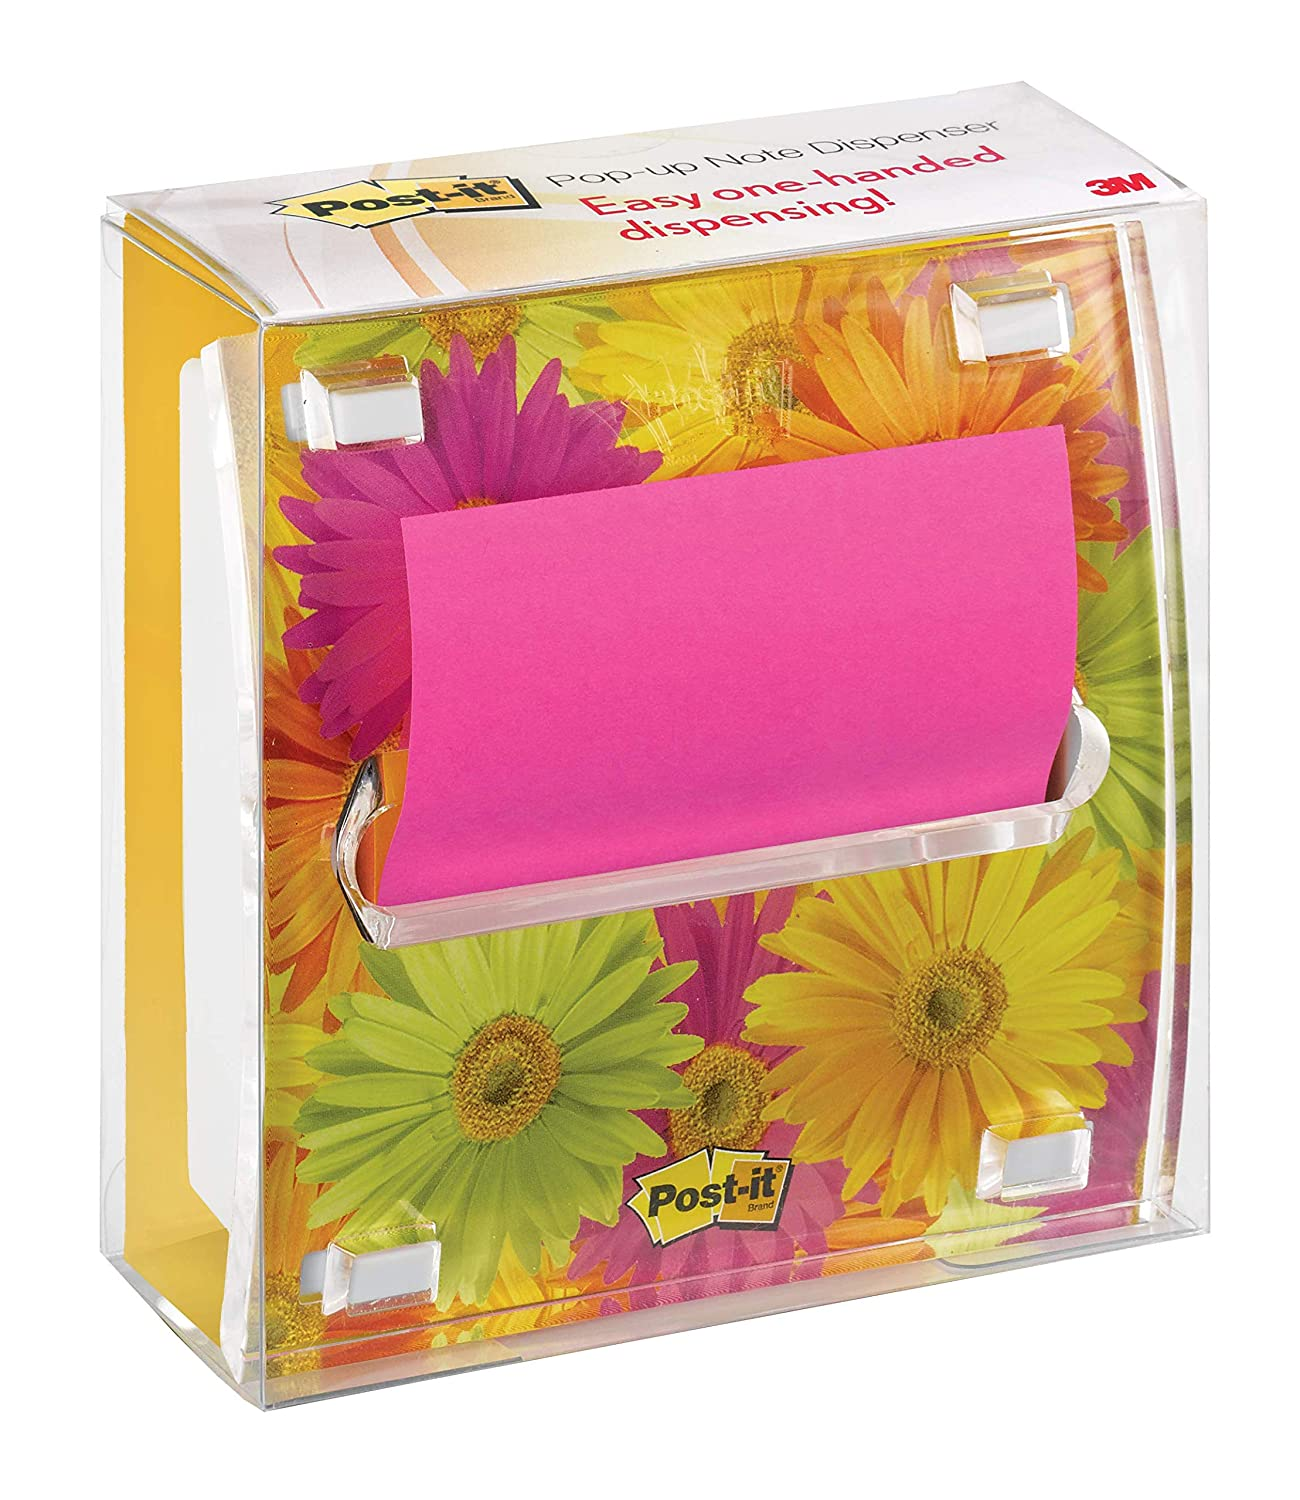 Amazon.com : Post-it® Notes Dispenser, Pop-up Refill, 3 Inches x 3 Inches, White with Clear Top and Dispenser Insert, Includes One Pop-up Refill : Sticky ...